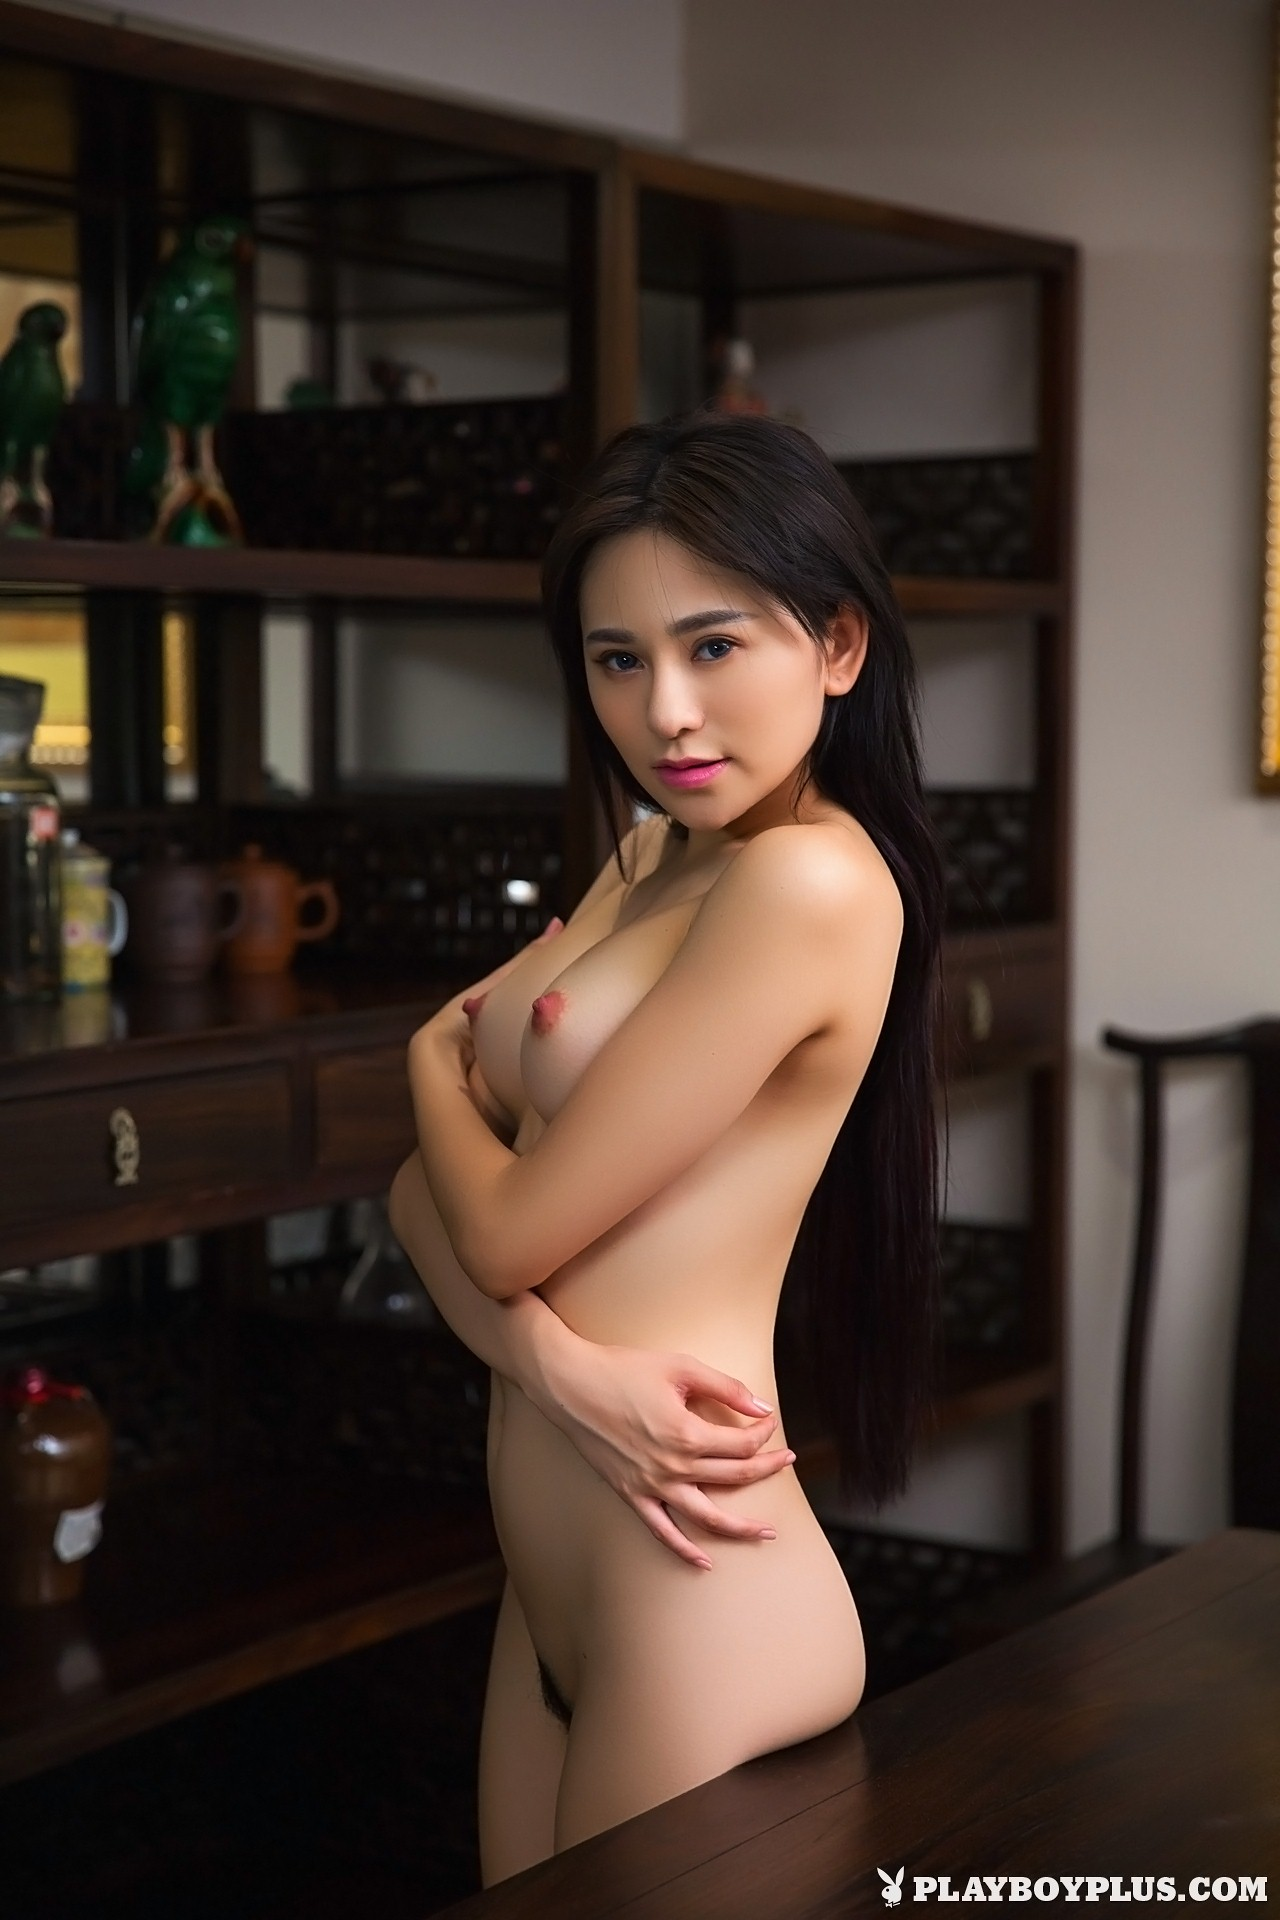 from Reuben playboy asian nude girl